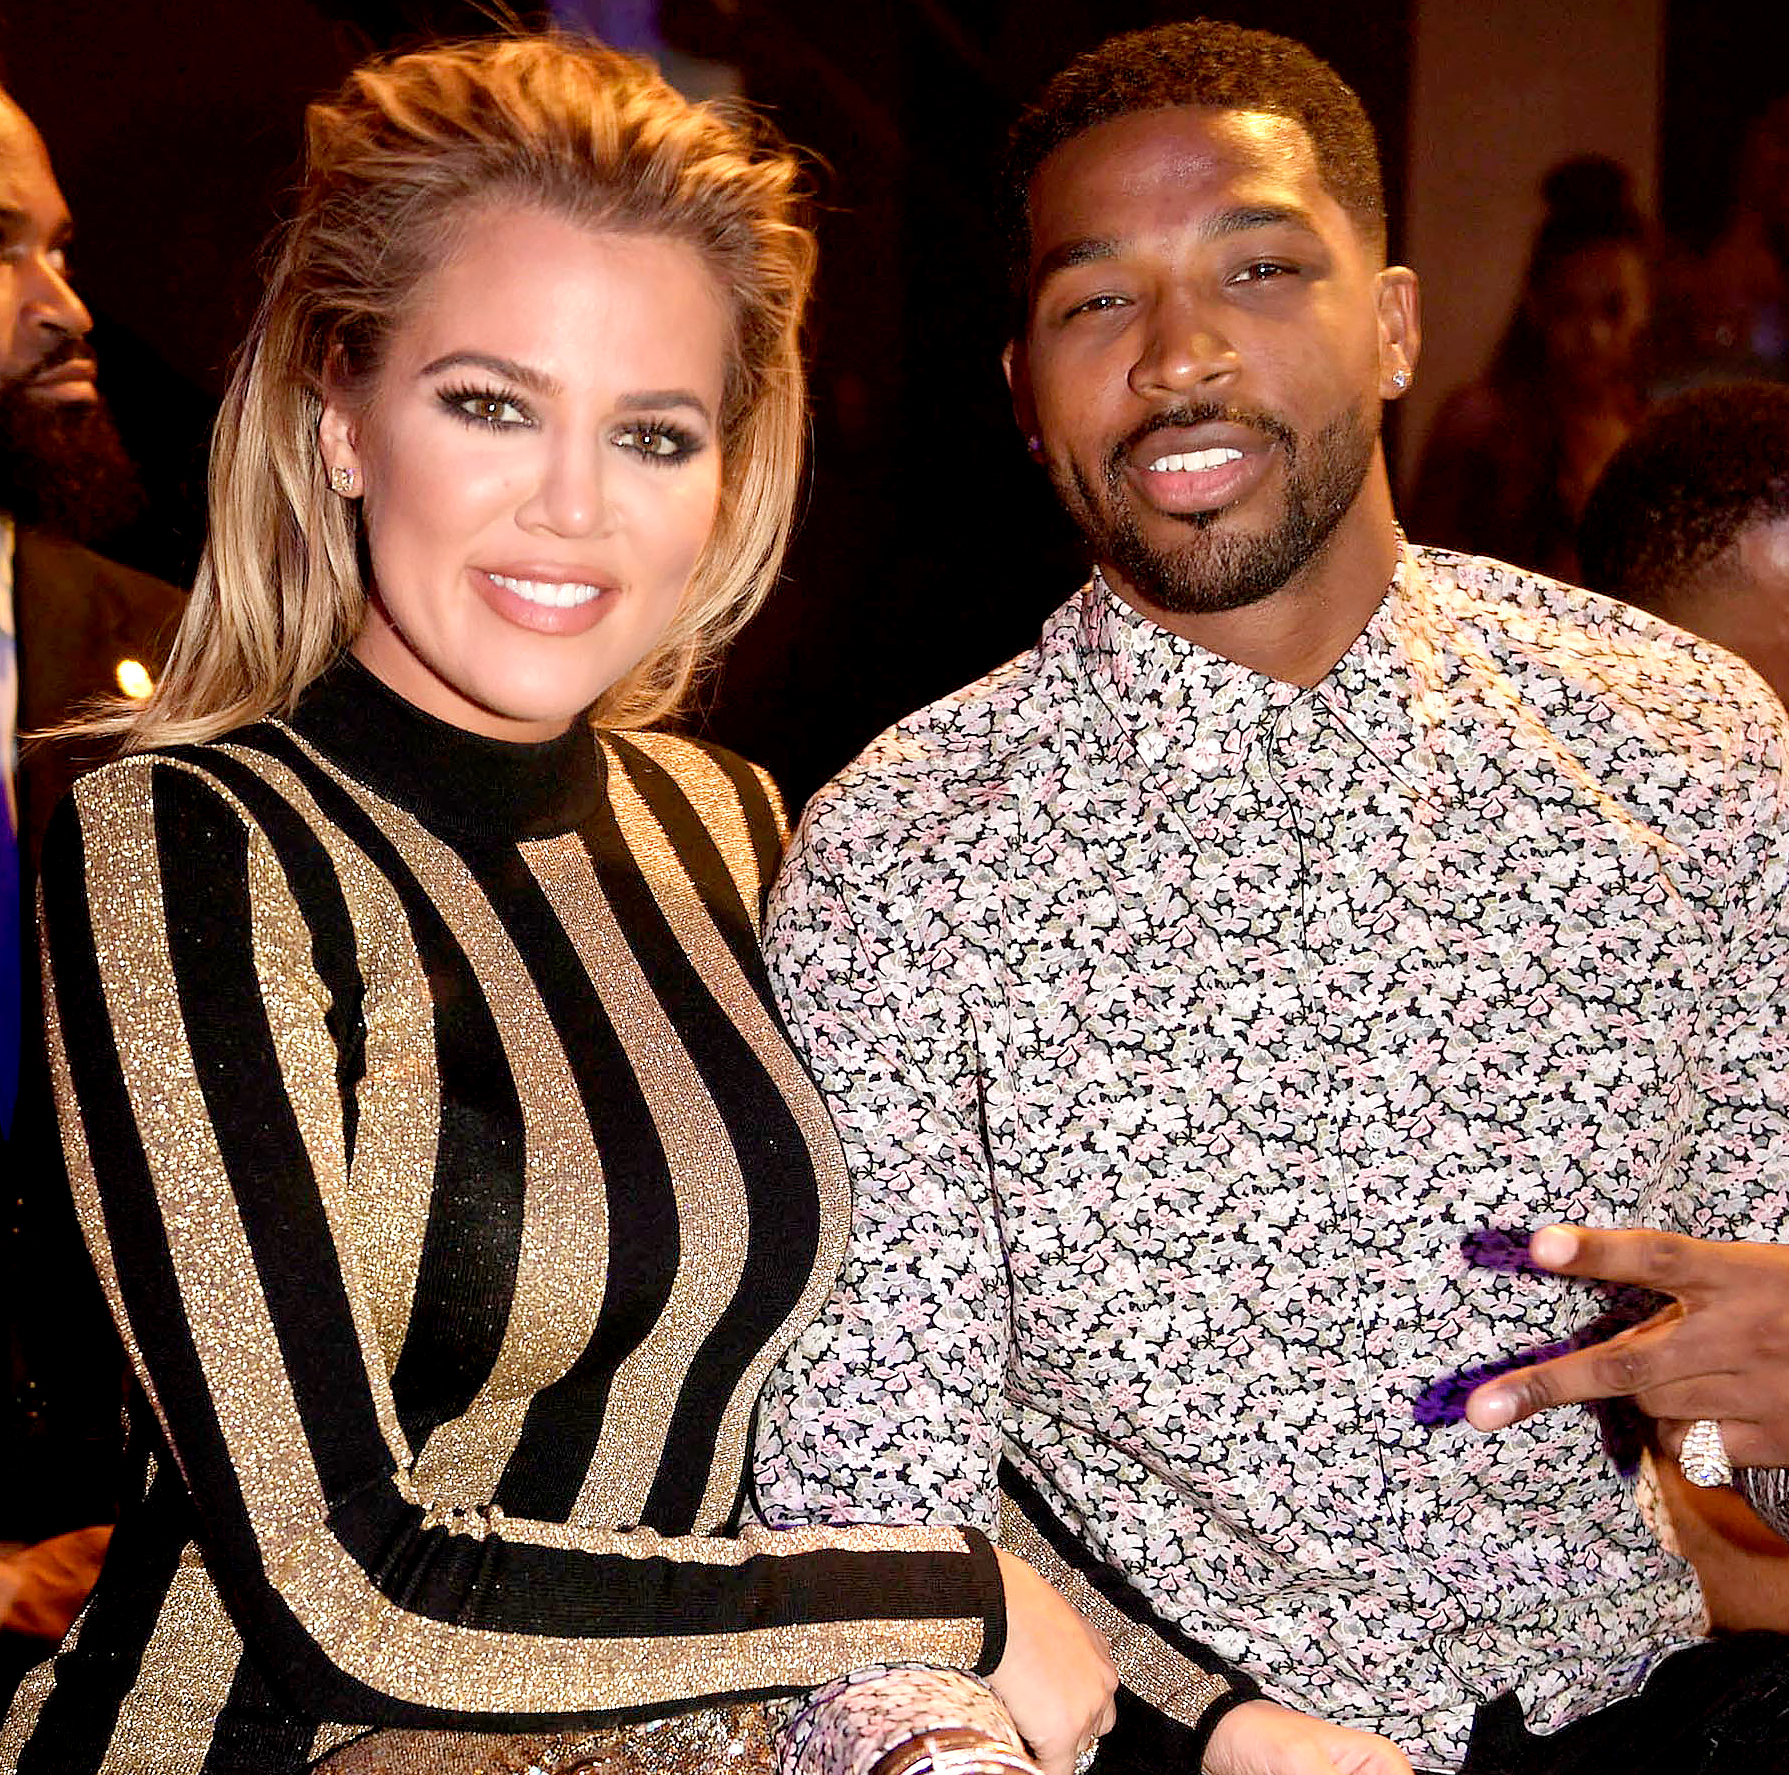 Khloe Kardashian and Tristan Thompson Are Acting Like a Couple in Quarantine